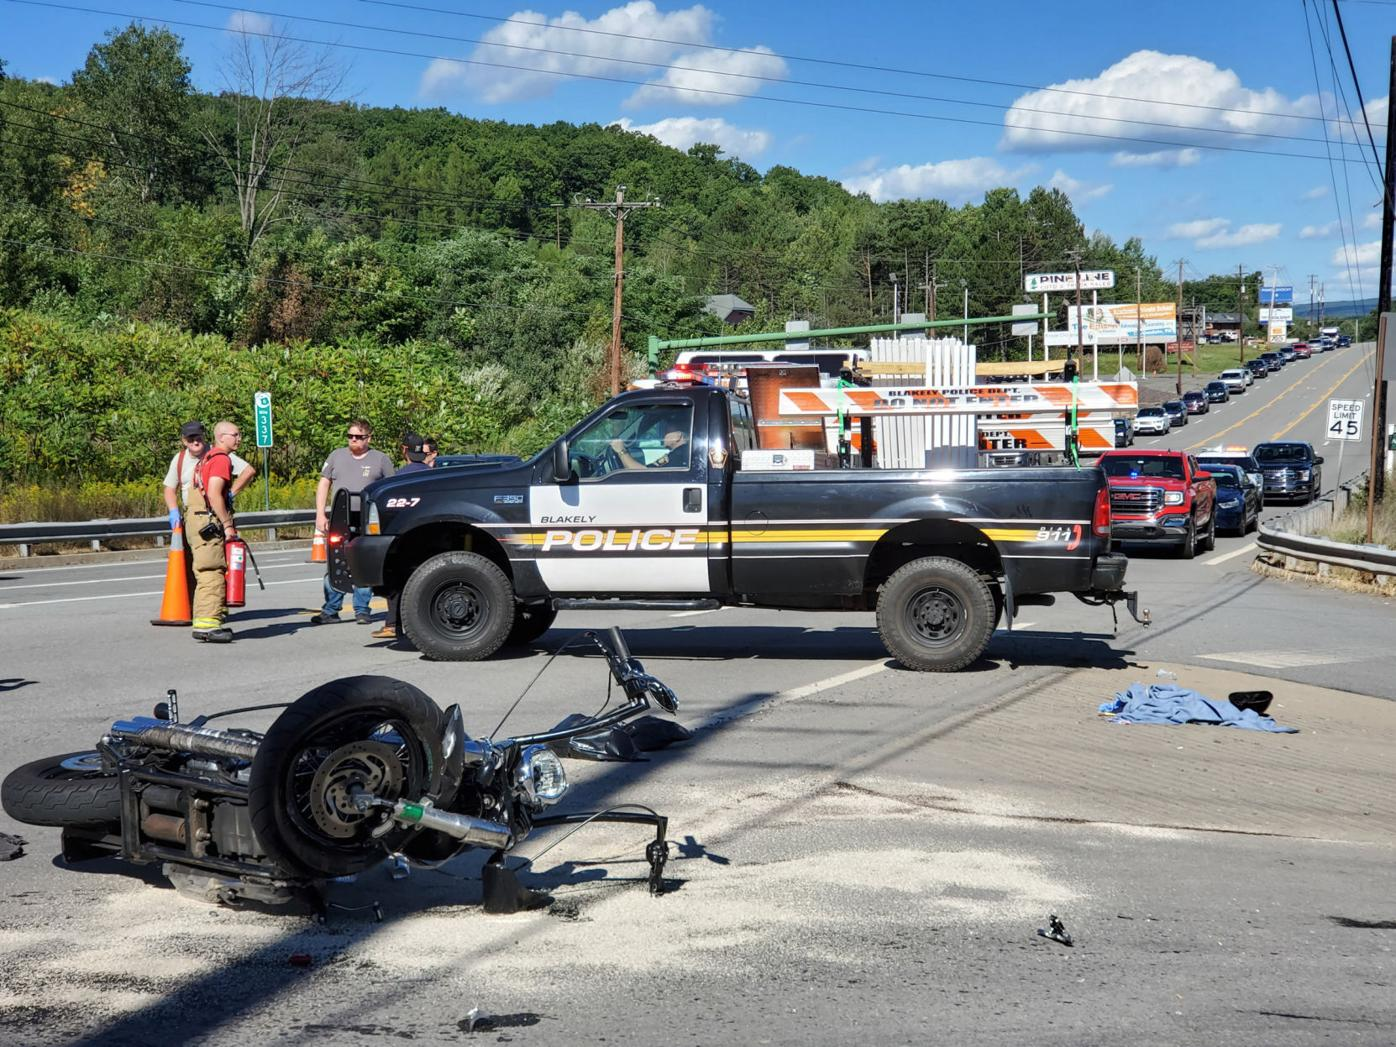 Name of victim of fatal motorcycle crash released